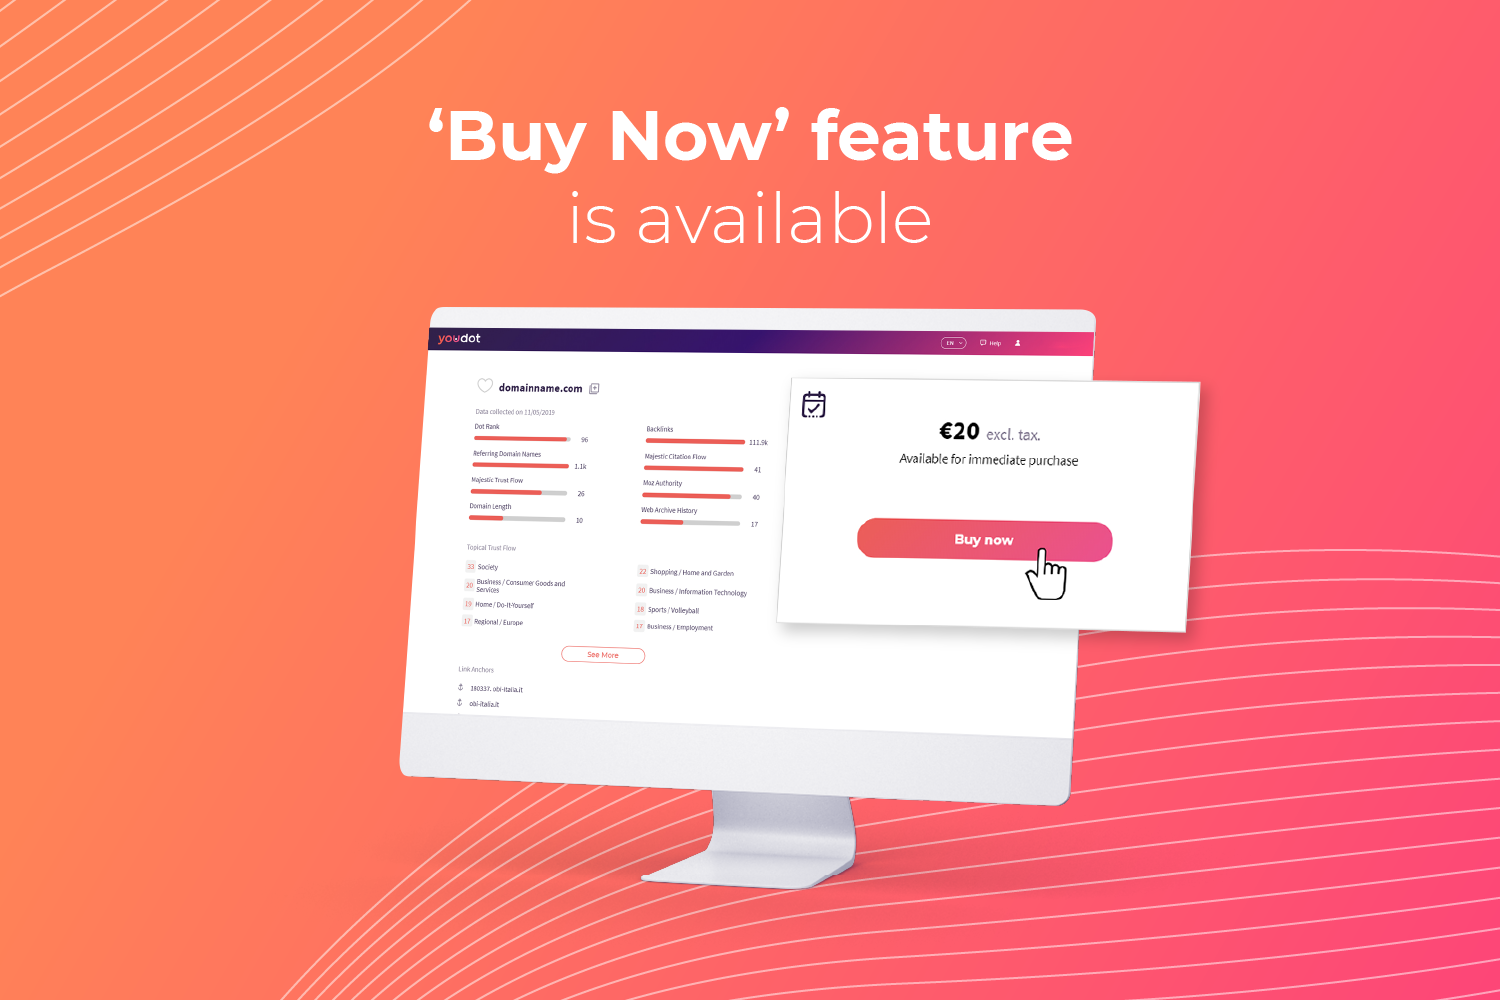 The 'Buy Now' feature is available on Youdot!